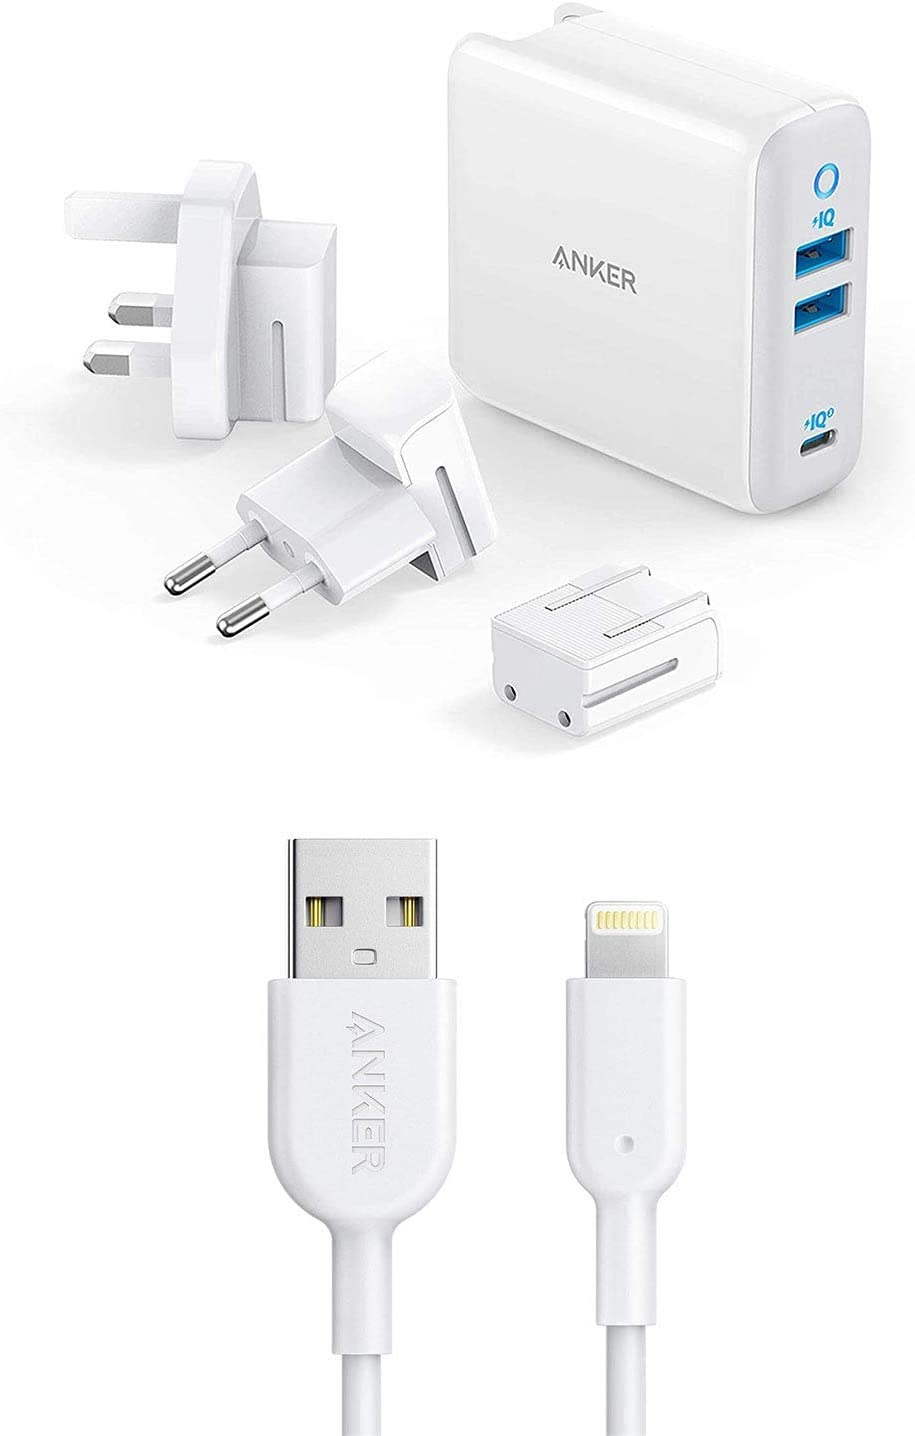 Anker 65W PIQ 3.0&GaN 3-Port Type-C Charger PowerPort III with Anker Powerline II Lightning Cable, [3ft Apple MFi Certified]